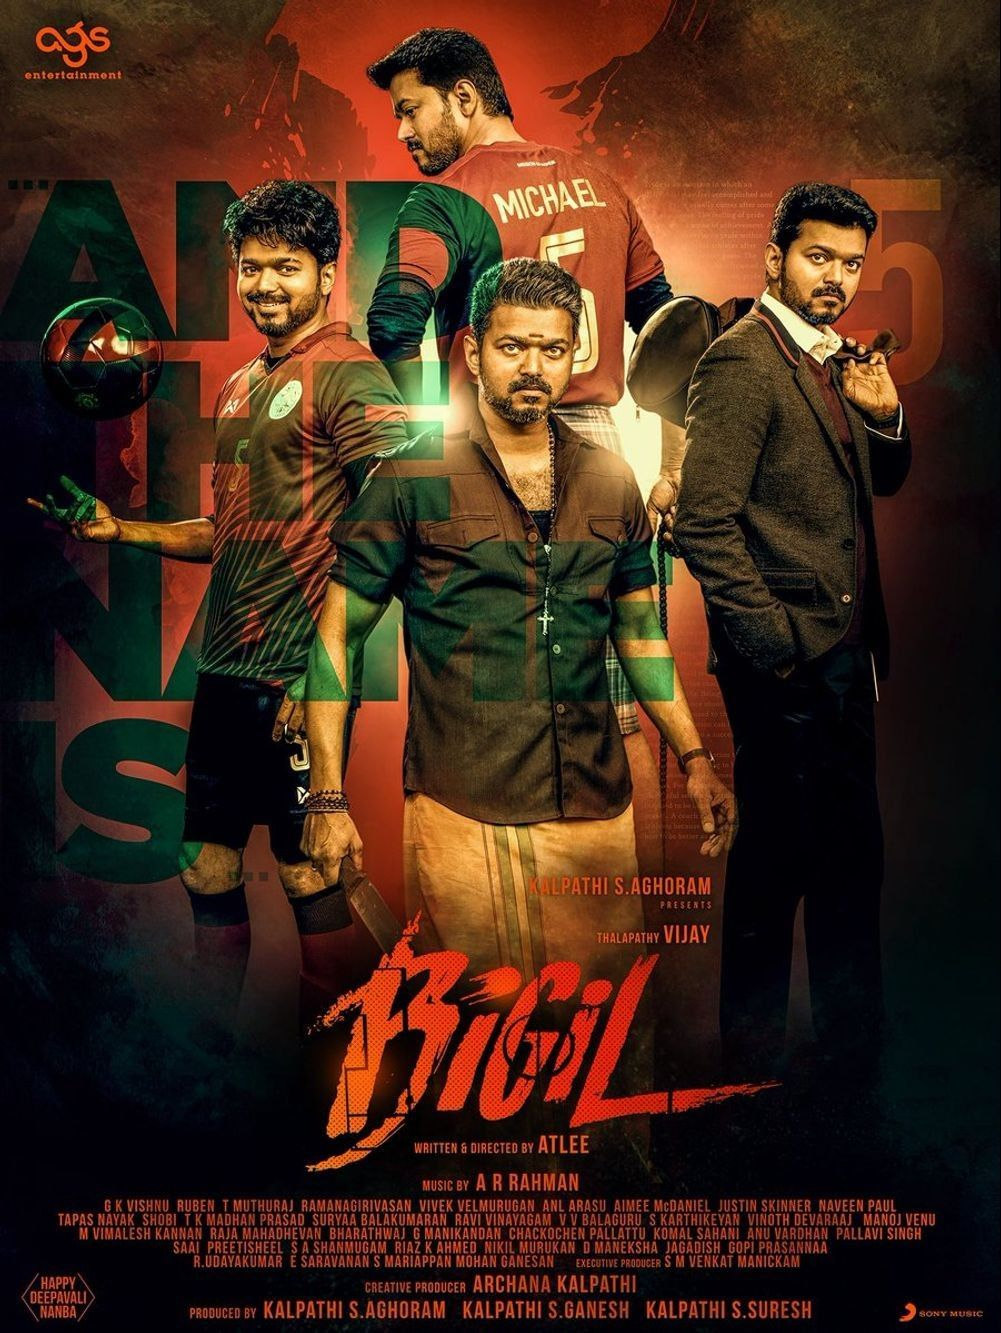 Bigil Movie Latest HD Photos & Posters, Wallpapers Download (1080p) (47106) - Bigil, Vijay